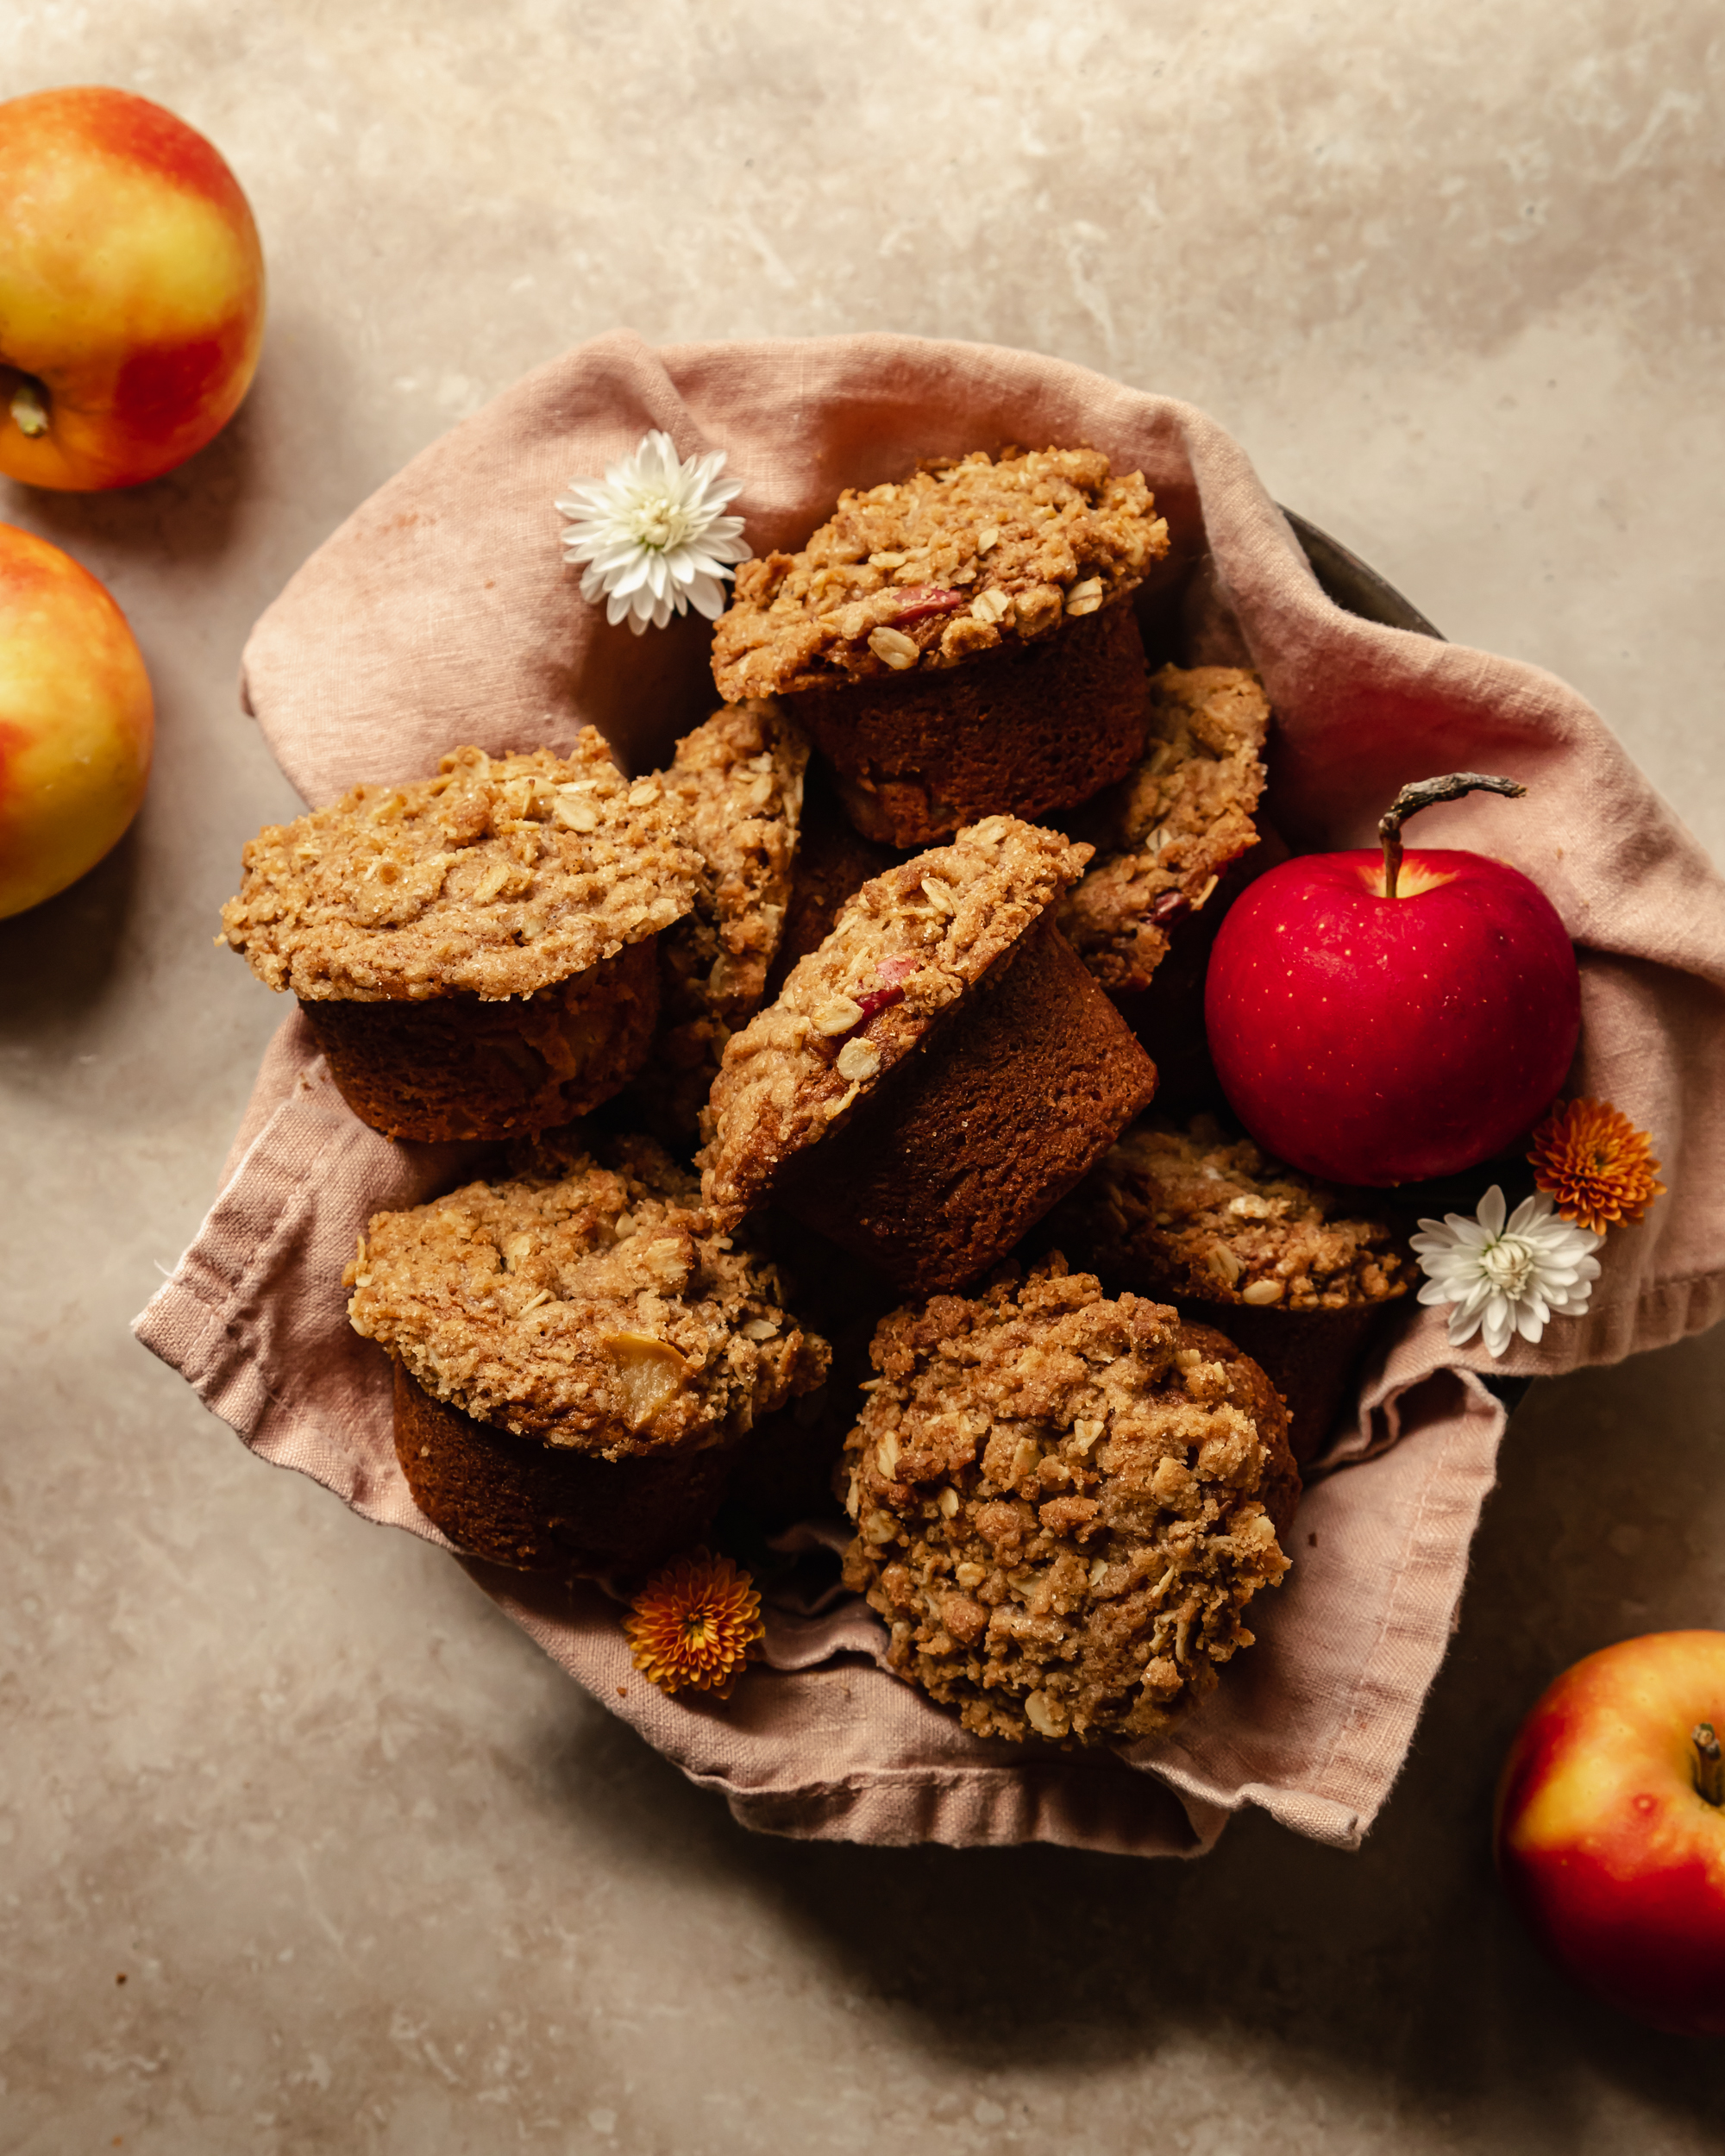 An overhead shot of crumble topped muffins set inside of a pink linen in a bowl. An apple is shown to the side.